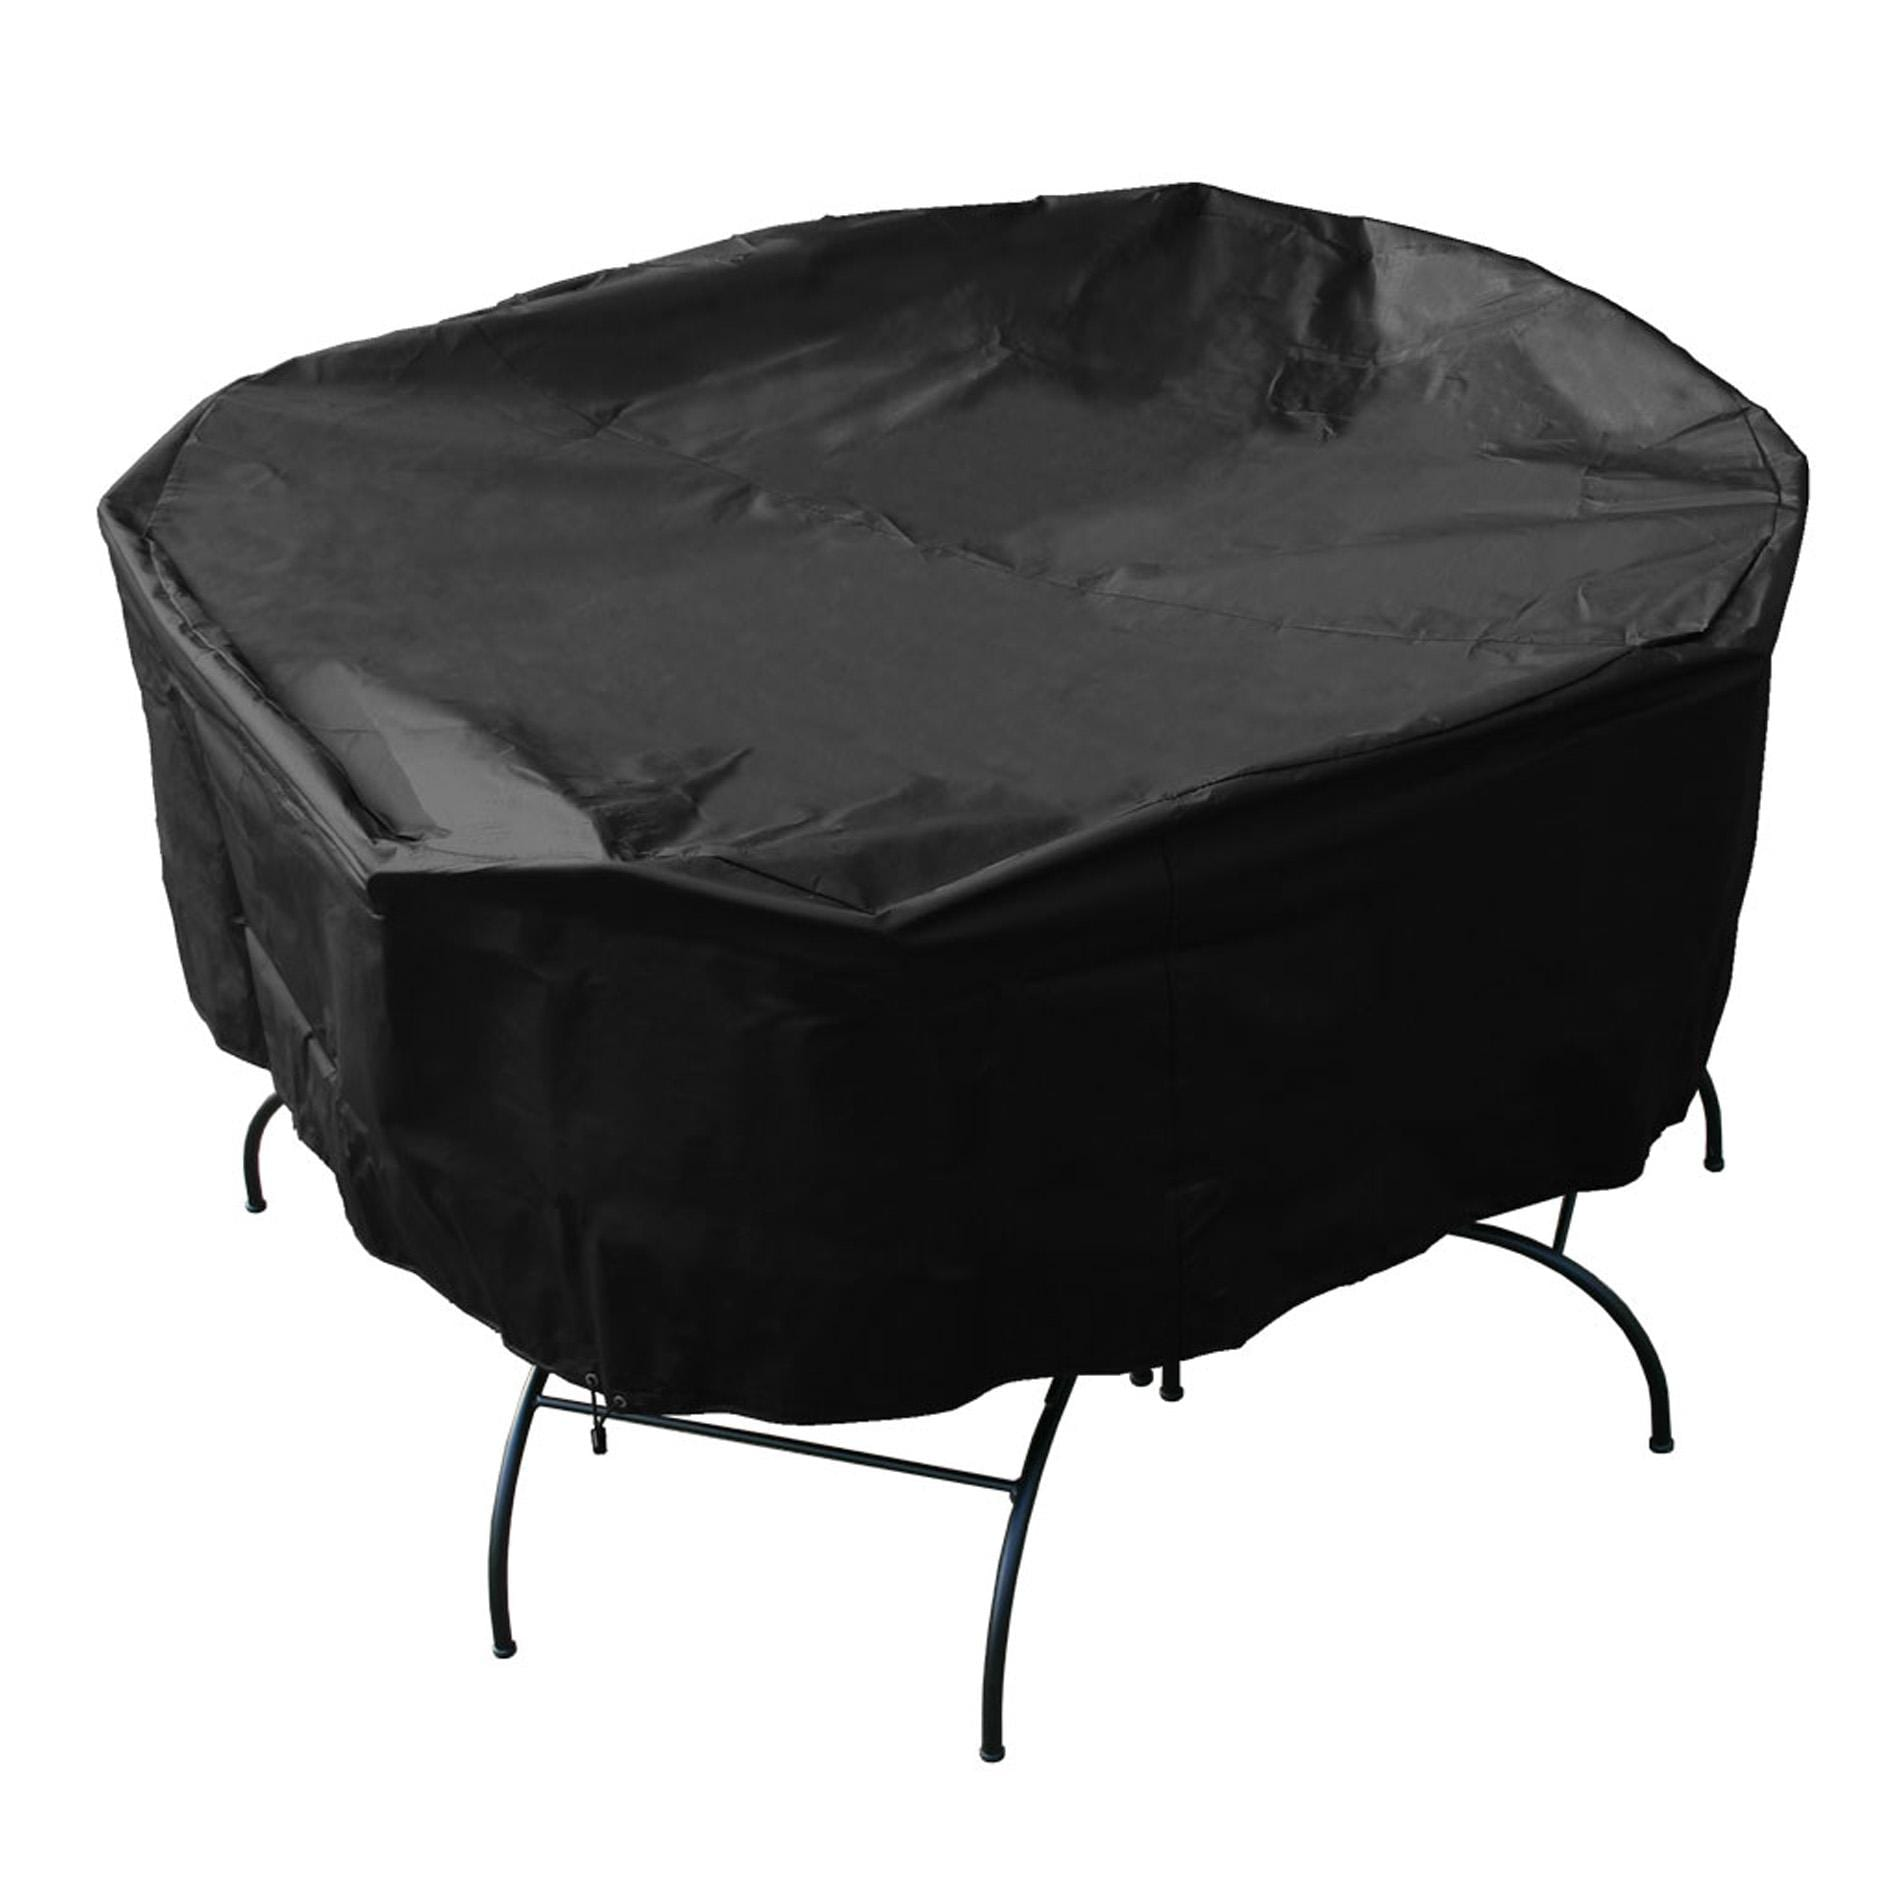 Mr bbq premium black patio set cover furniture garden deck for Outdoor furniture covers in black